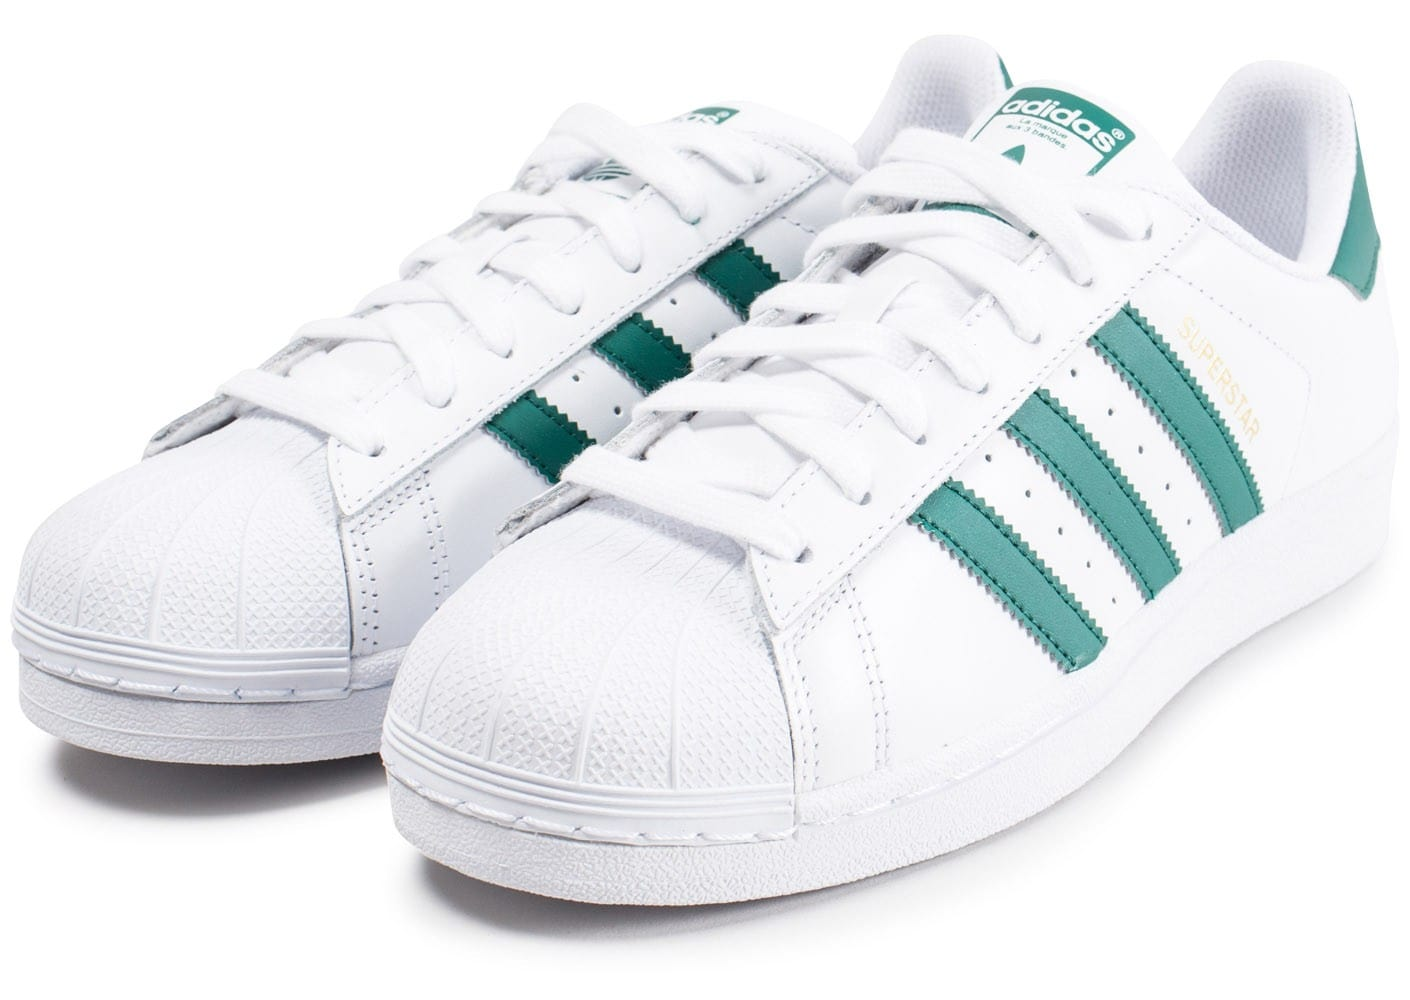 adidas superstar blanche et verte chaussures baskets homme chausport. Black Bedroom Furniture Sets. Home Design Ideas